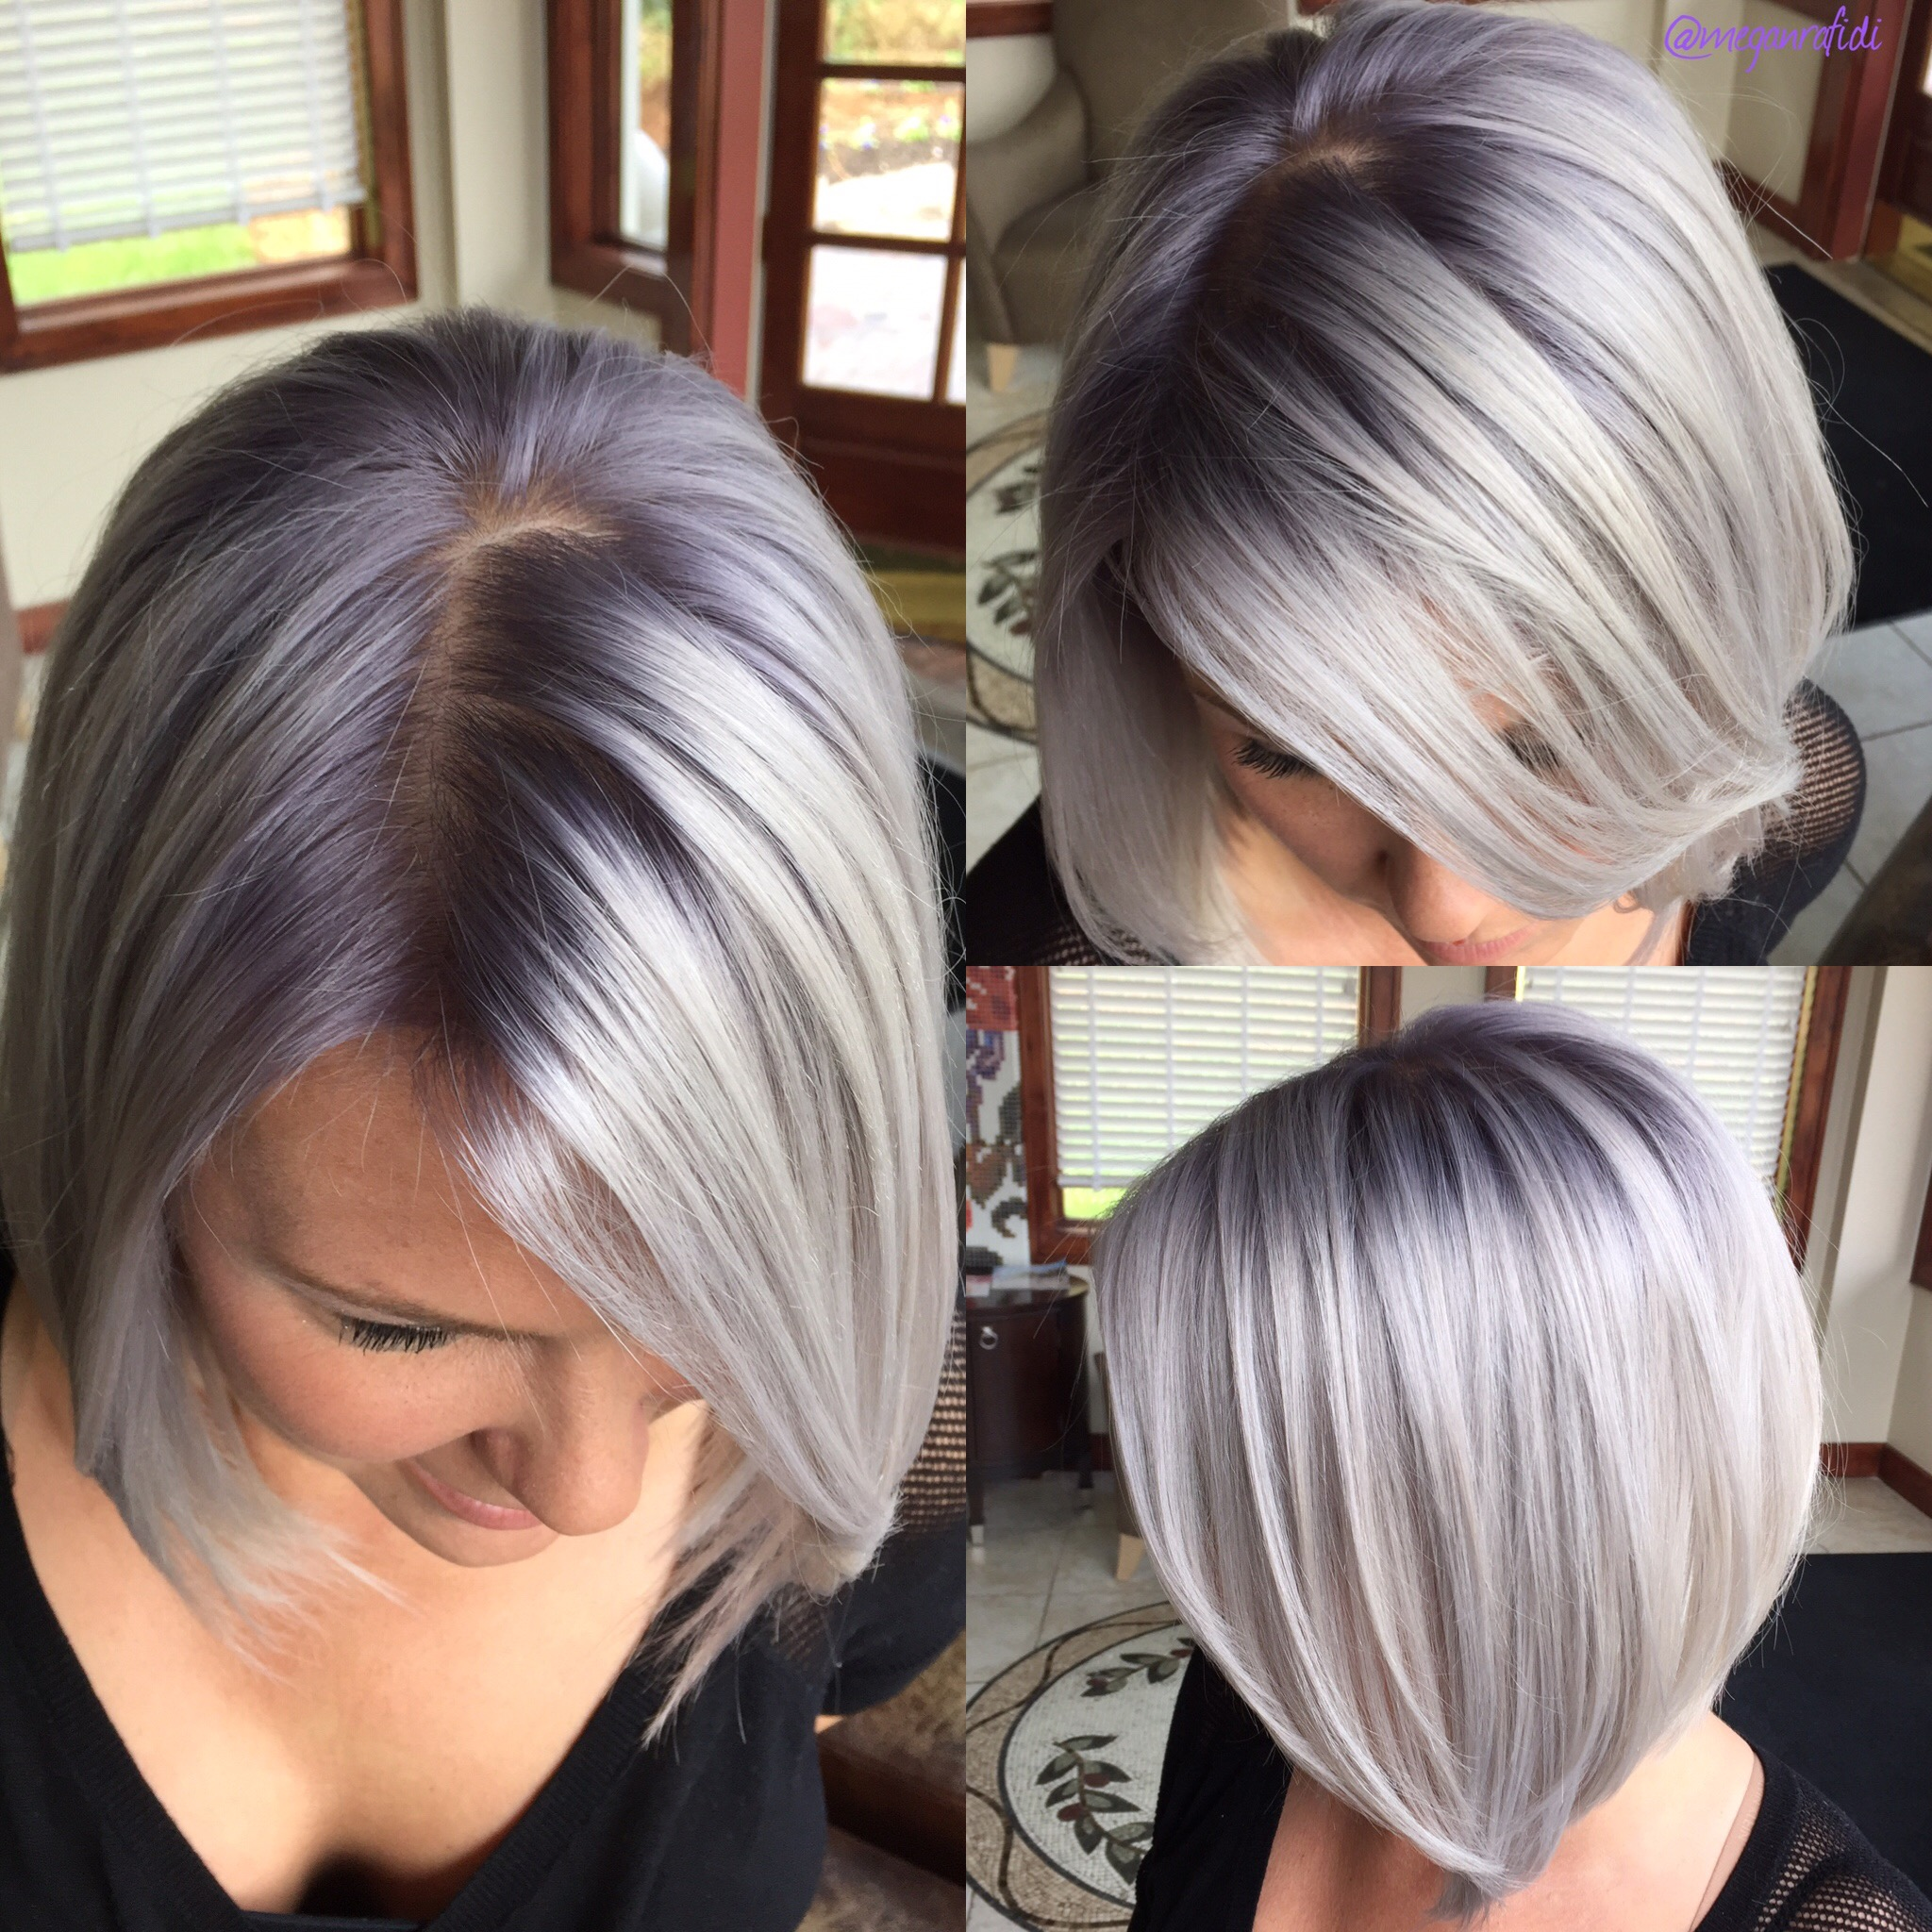 THE JOURNEY: Classic Blonde to Pink Root Shadow to